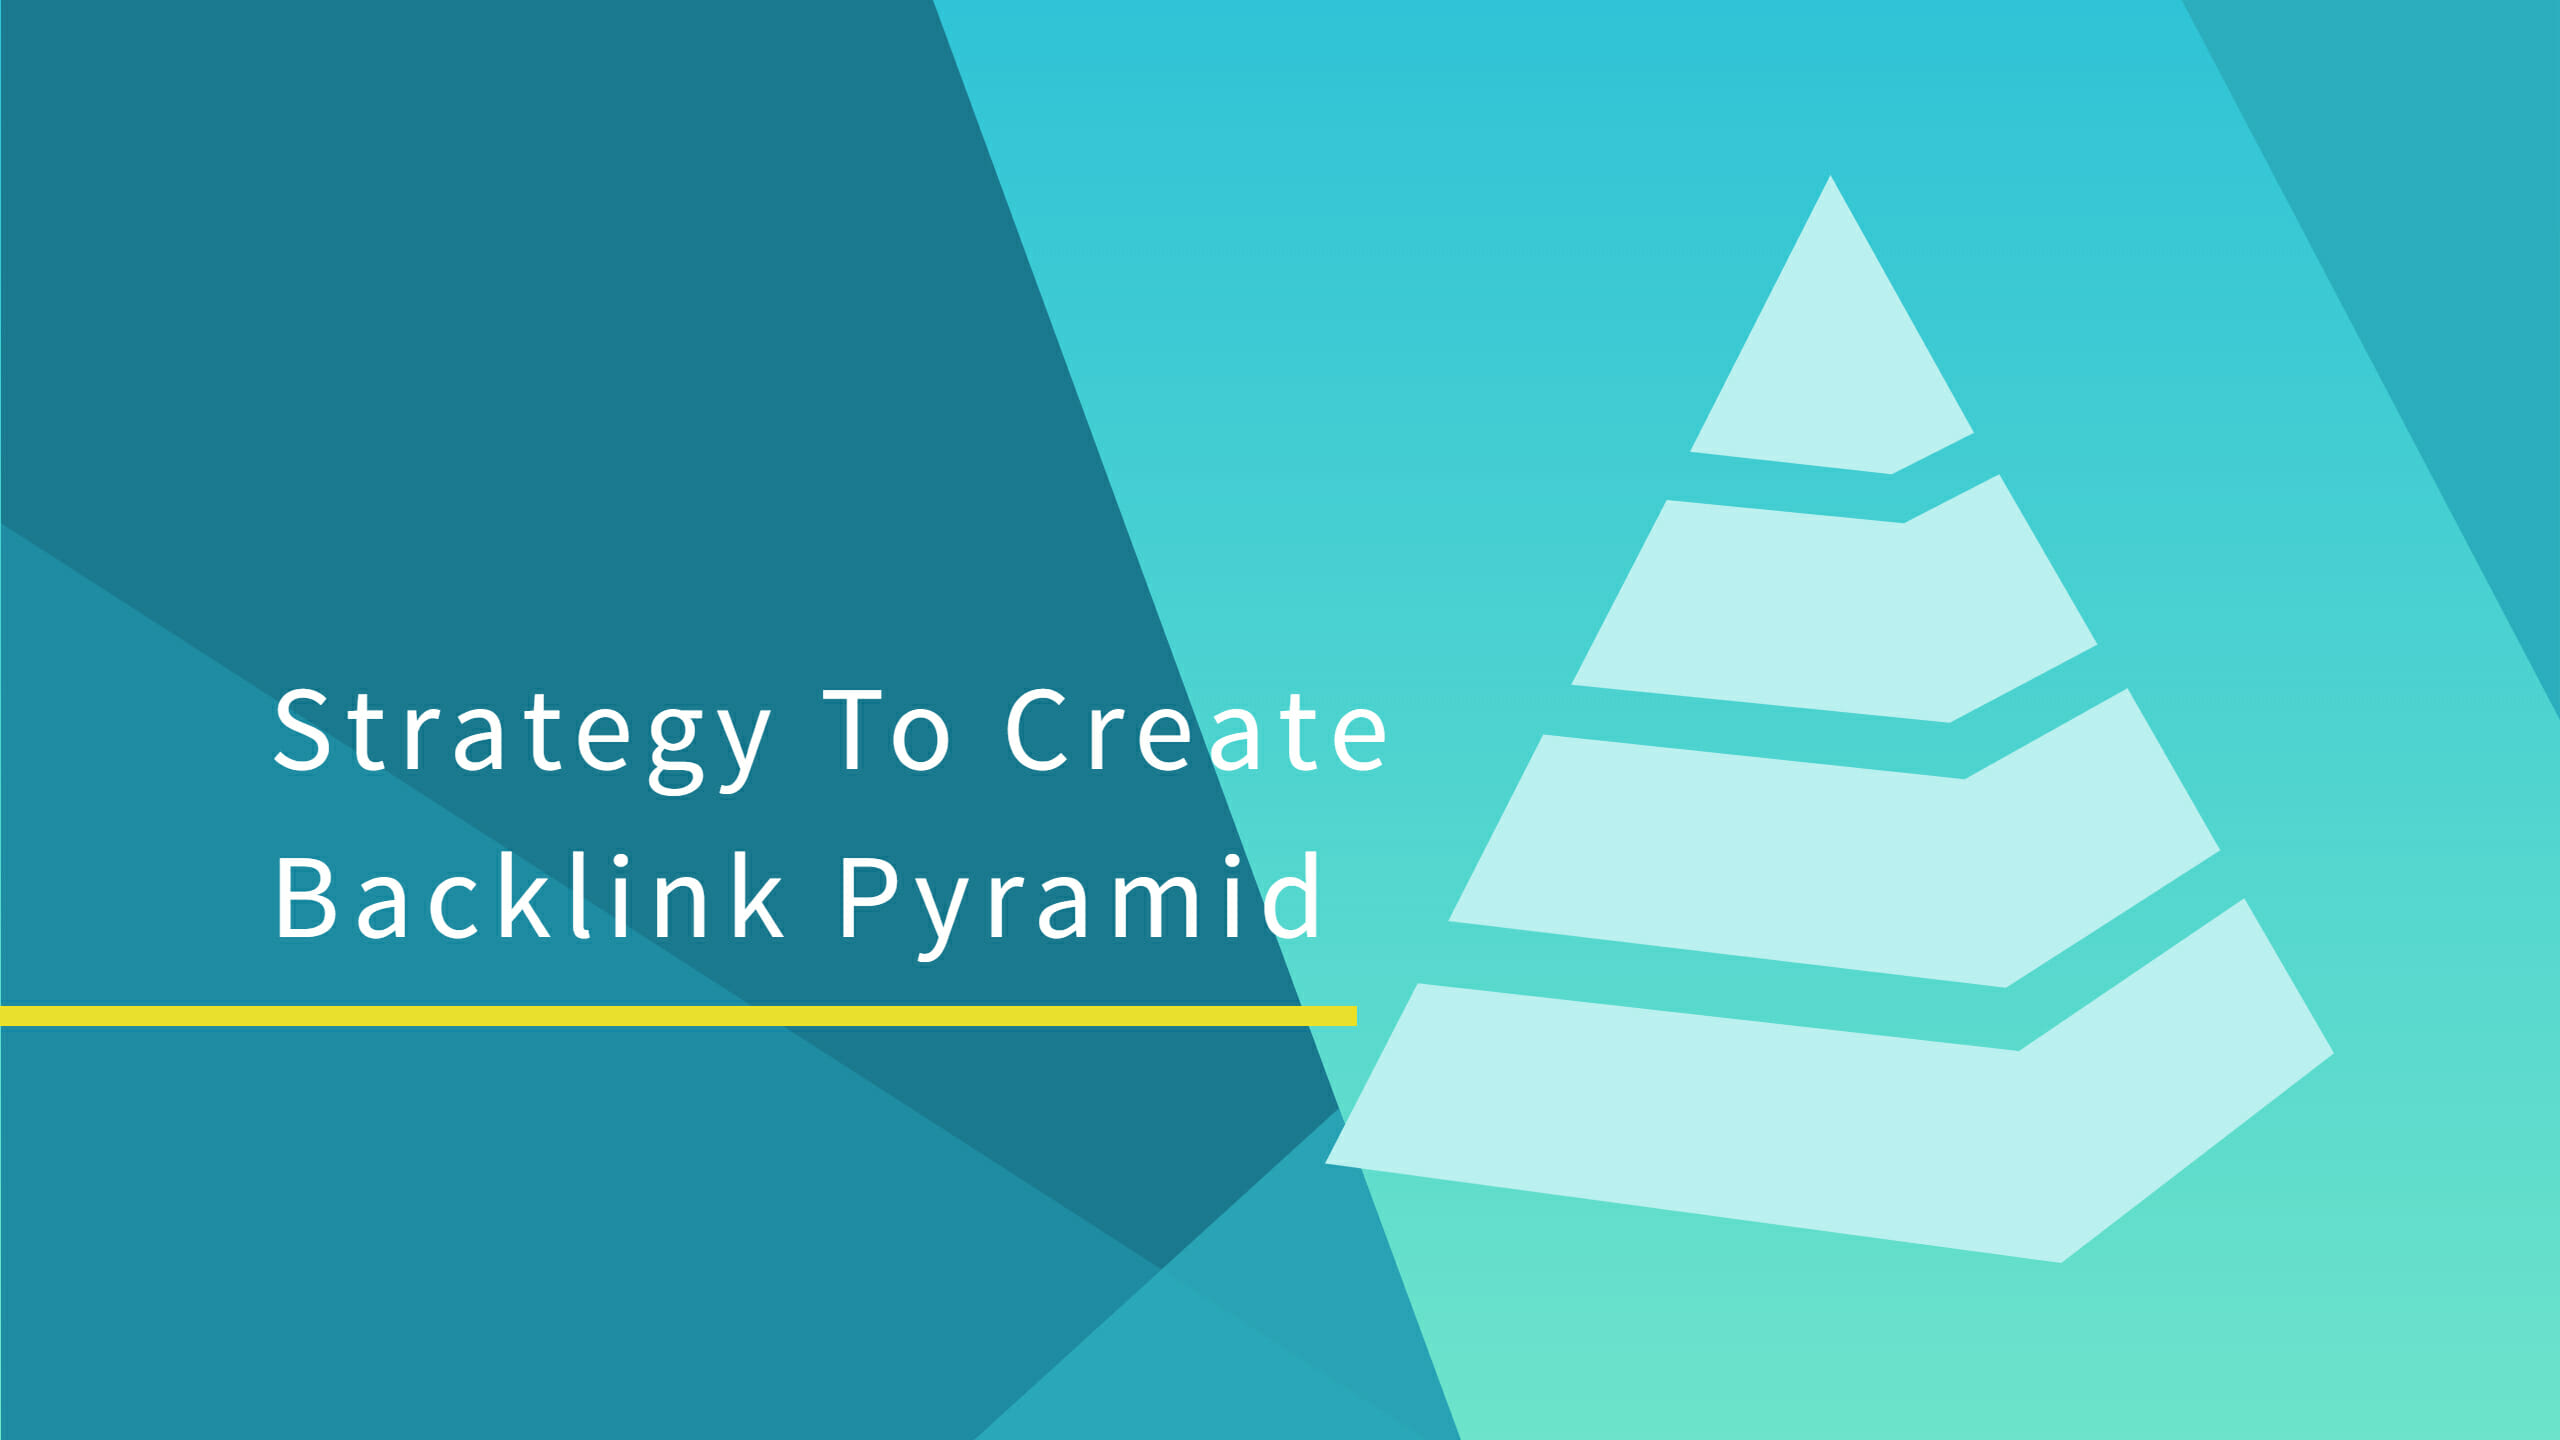 Get Link Pyramid from 1 DA 70+ 10 DA 50+ and 10 DA 30+